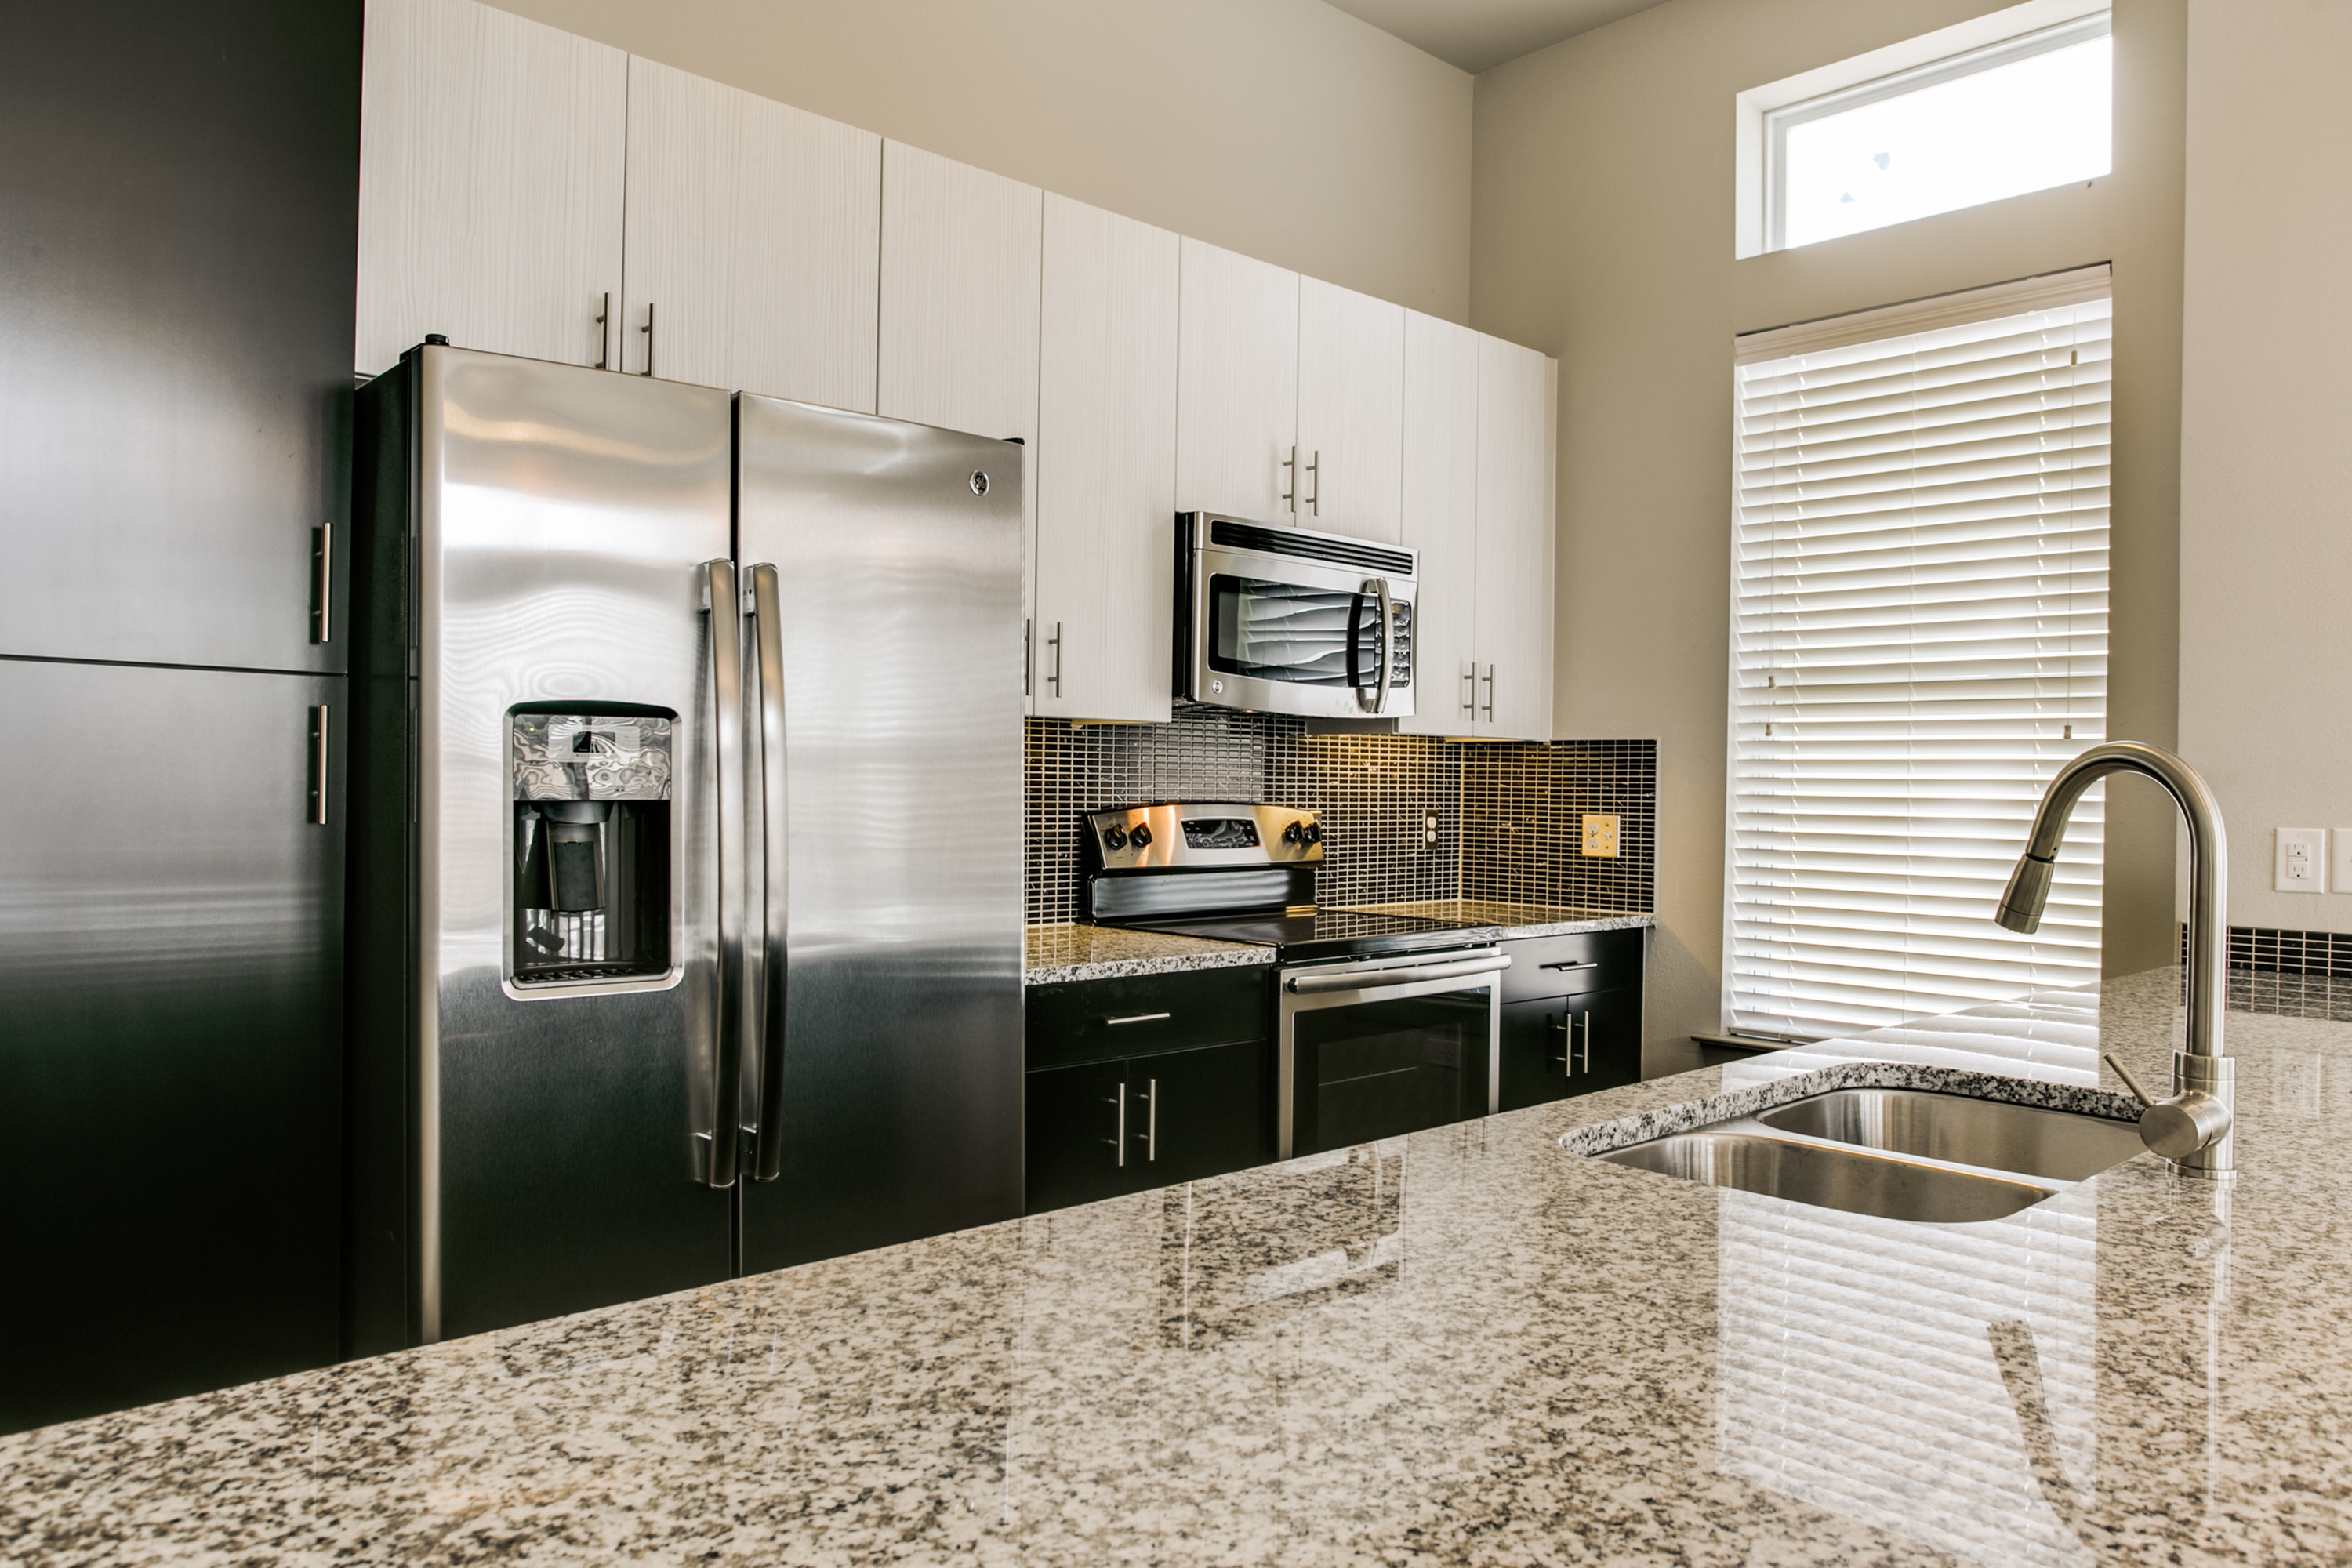 View of Kitchen, Showing Granite Counter Top and Stainless Steel Appliances at Routh Street Flats Apartments